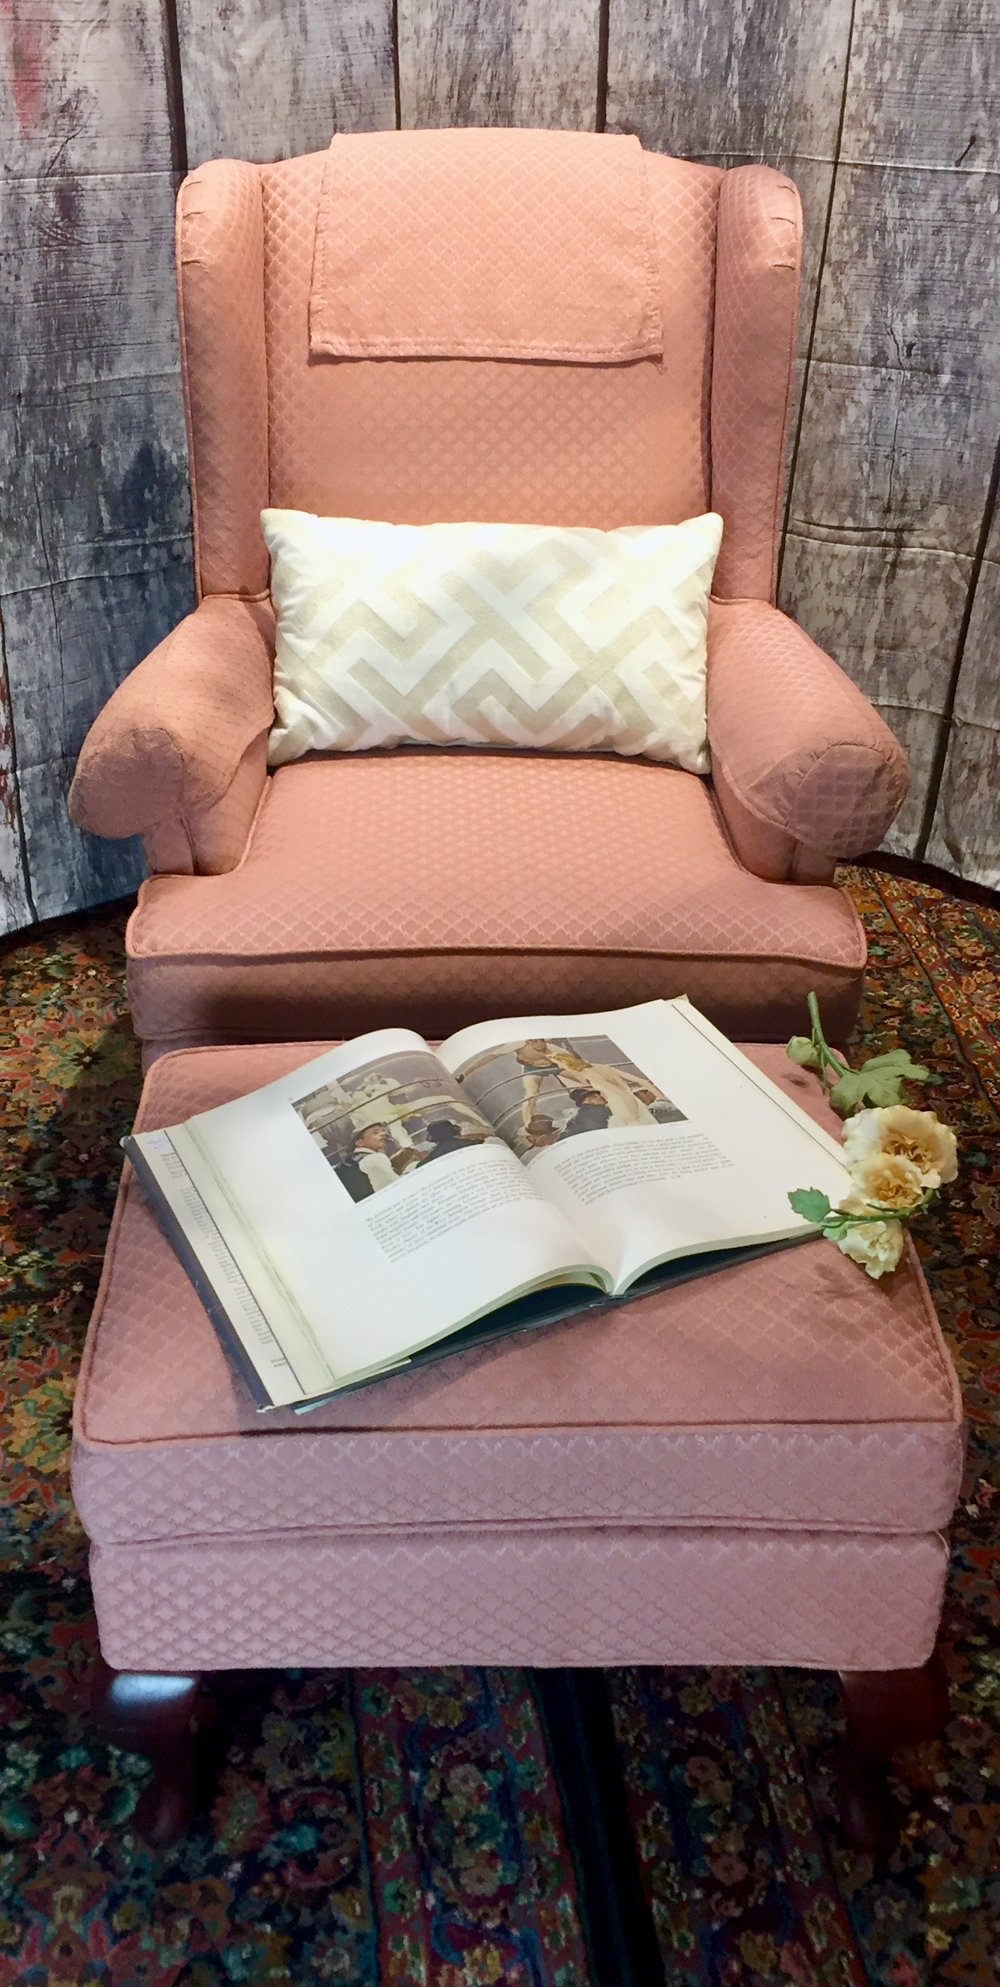 Pink Wingback Chair $129.95 and Ottoman $39.95 - C1021